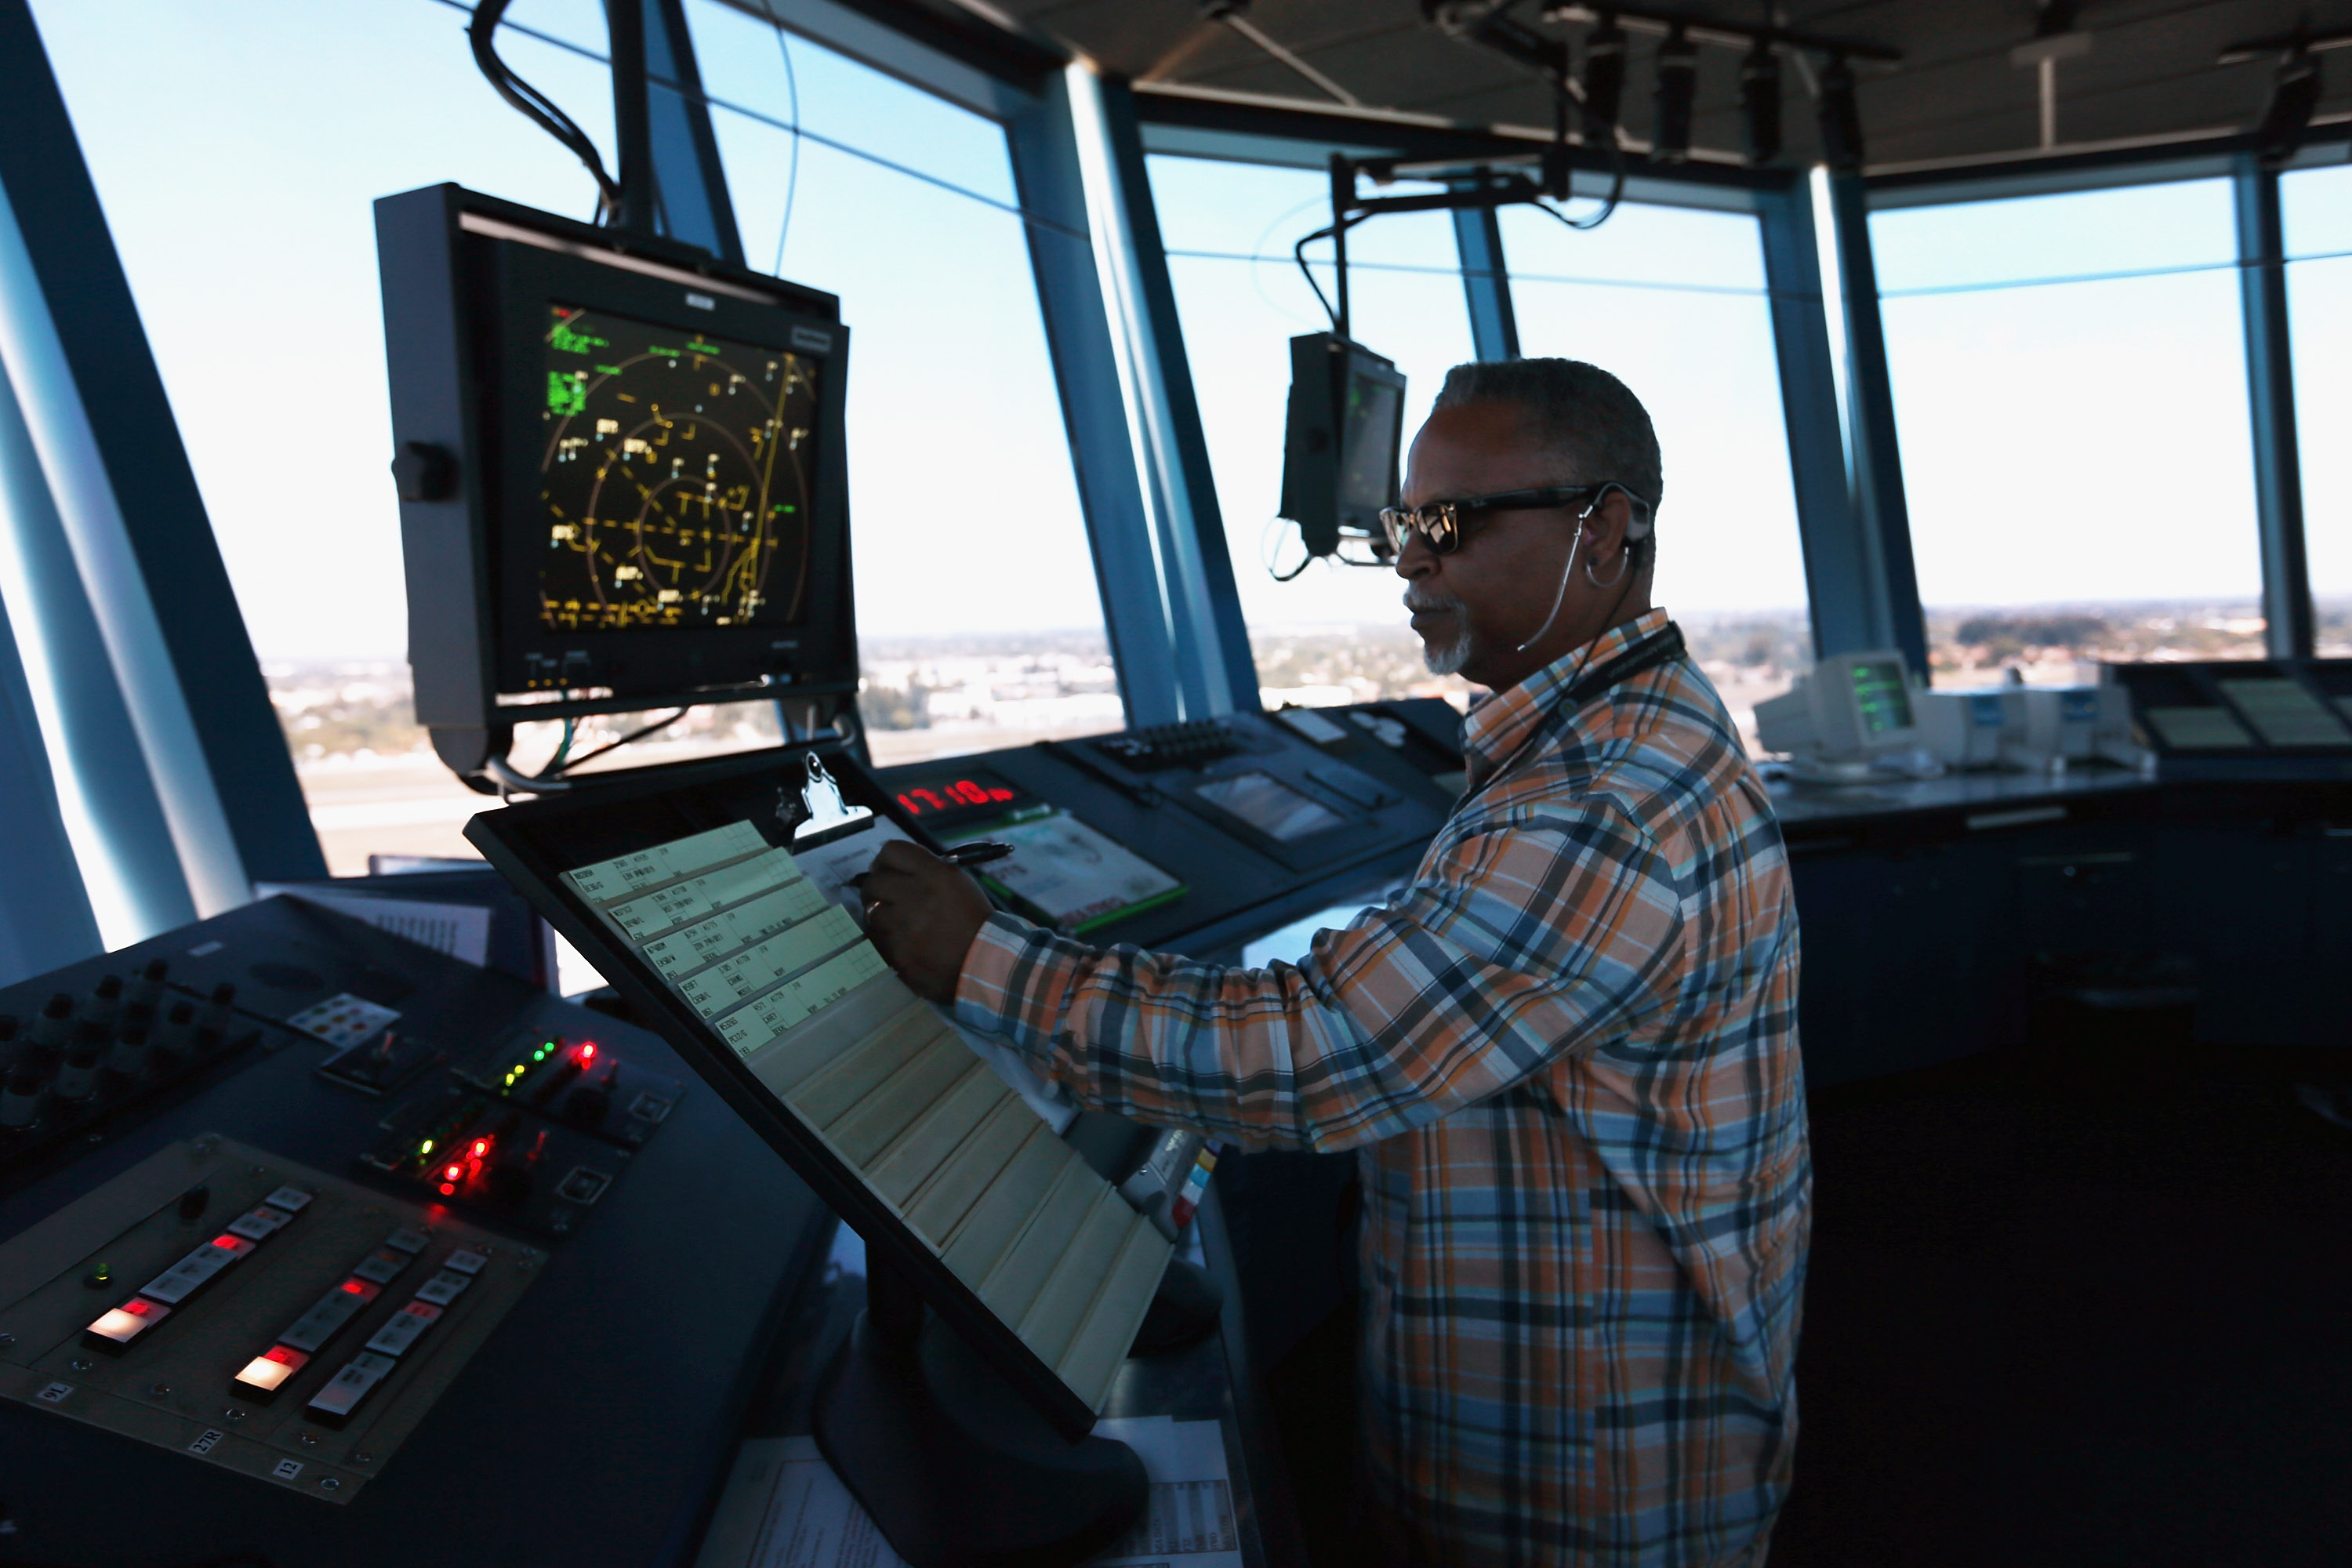 Air Traffic Controller, Robert Moreland, works in the control tower at Opa-locka airport on March 4, 2013 in Opa-locka, Florida.